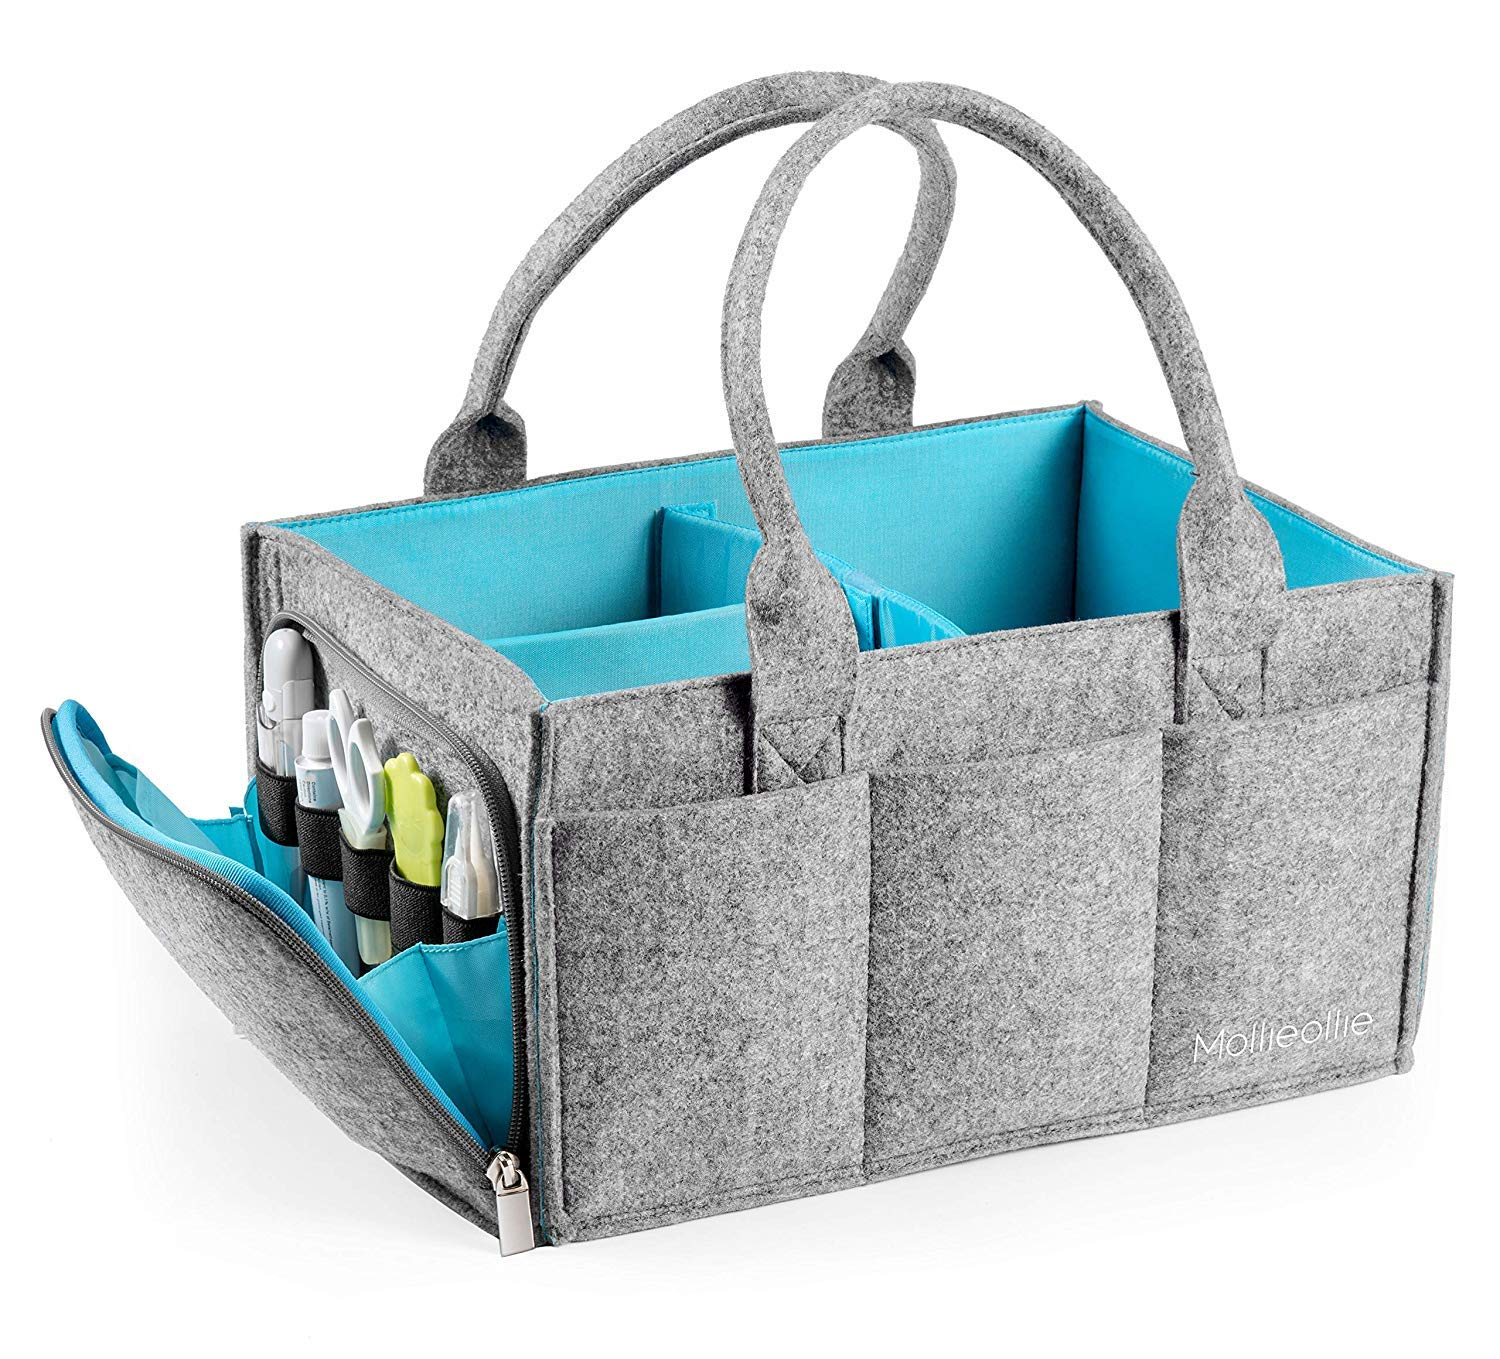 Keebgyy Baby Diaper Caddy Organizer, Felt Nursery Diaper Tote Bag Gray Felt Basket Infant Girl Boy Baby Wipes Kid Toys Stylish Large Diaper Caddy - Newborn Registry Must Have